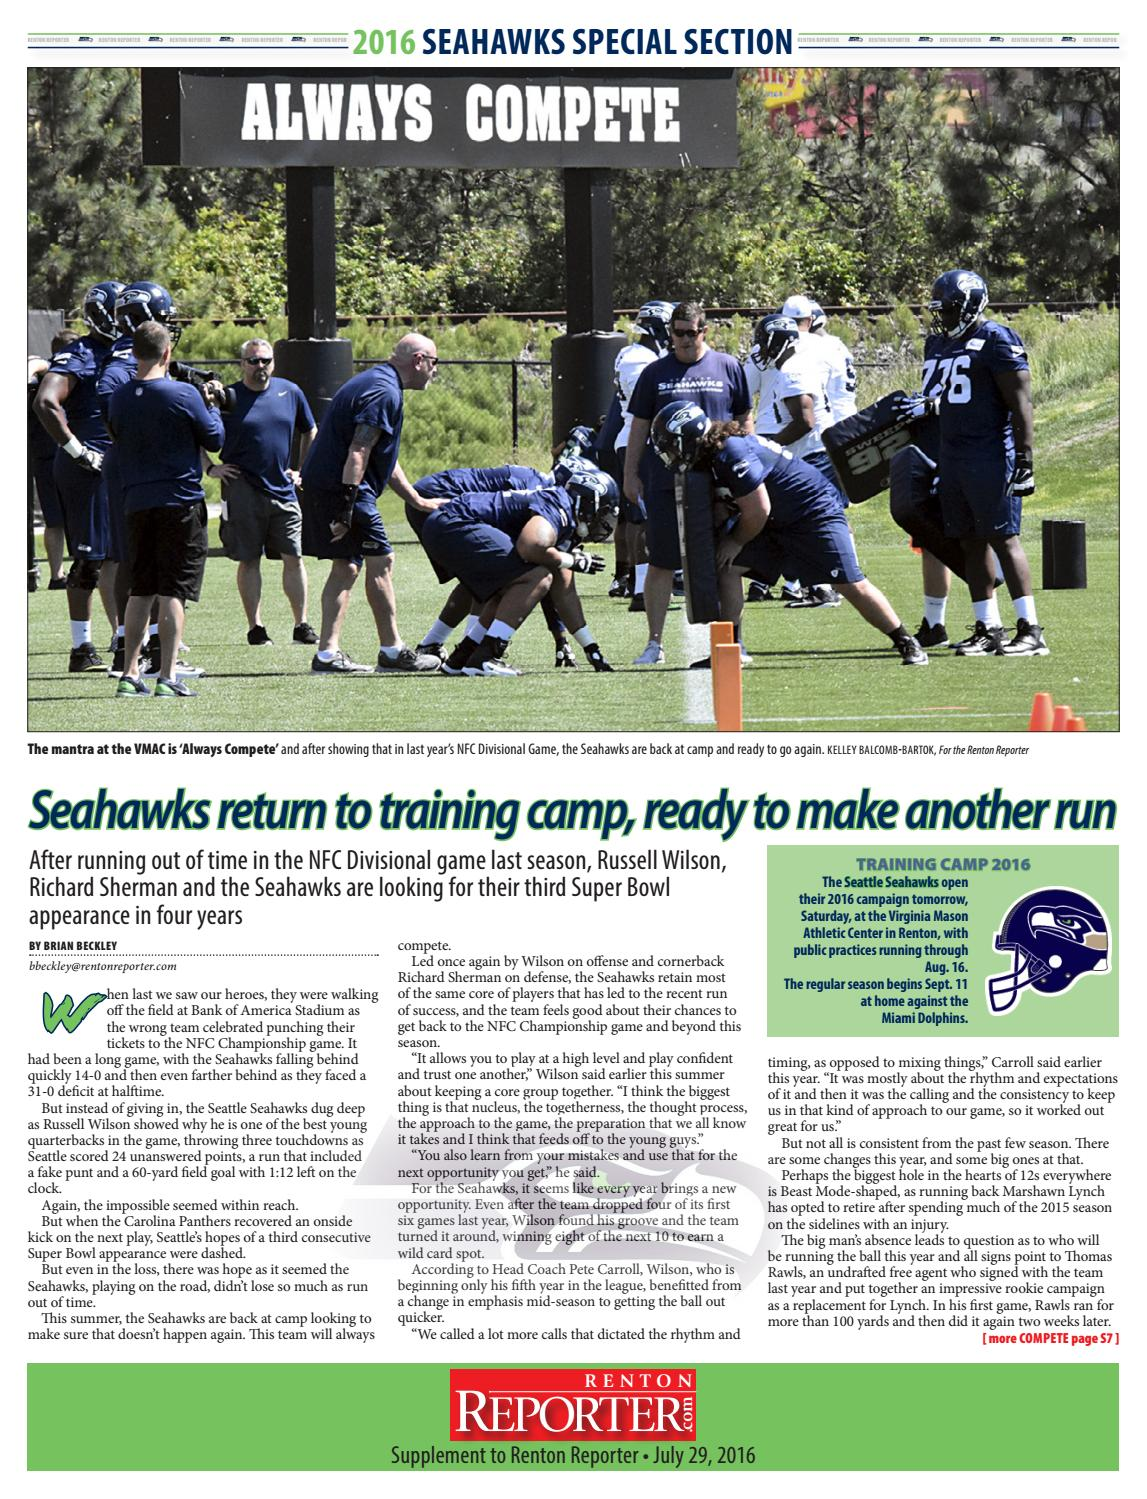 89d2087a030 Seahawks - 2016 Seahawks Training Camp by Sound Publishing - issuu